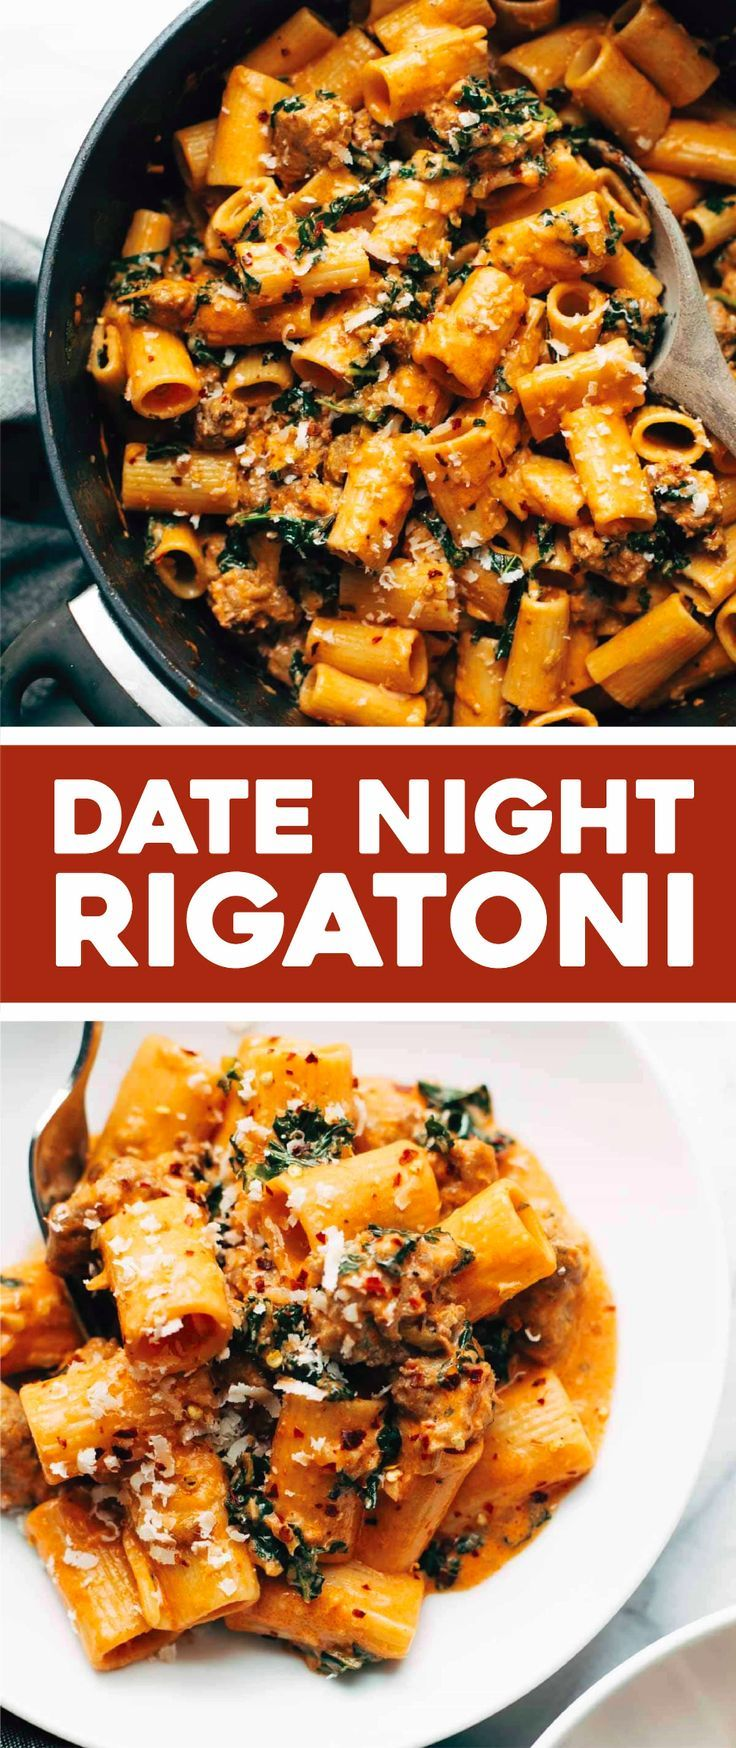 Date Night Rigatoni with Sausage and Kale - Pinch of Yum